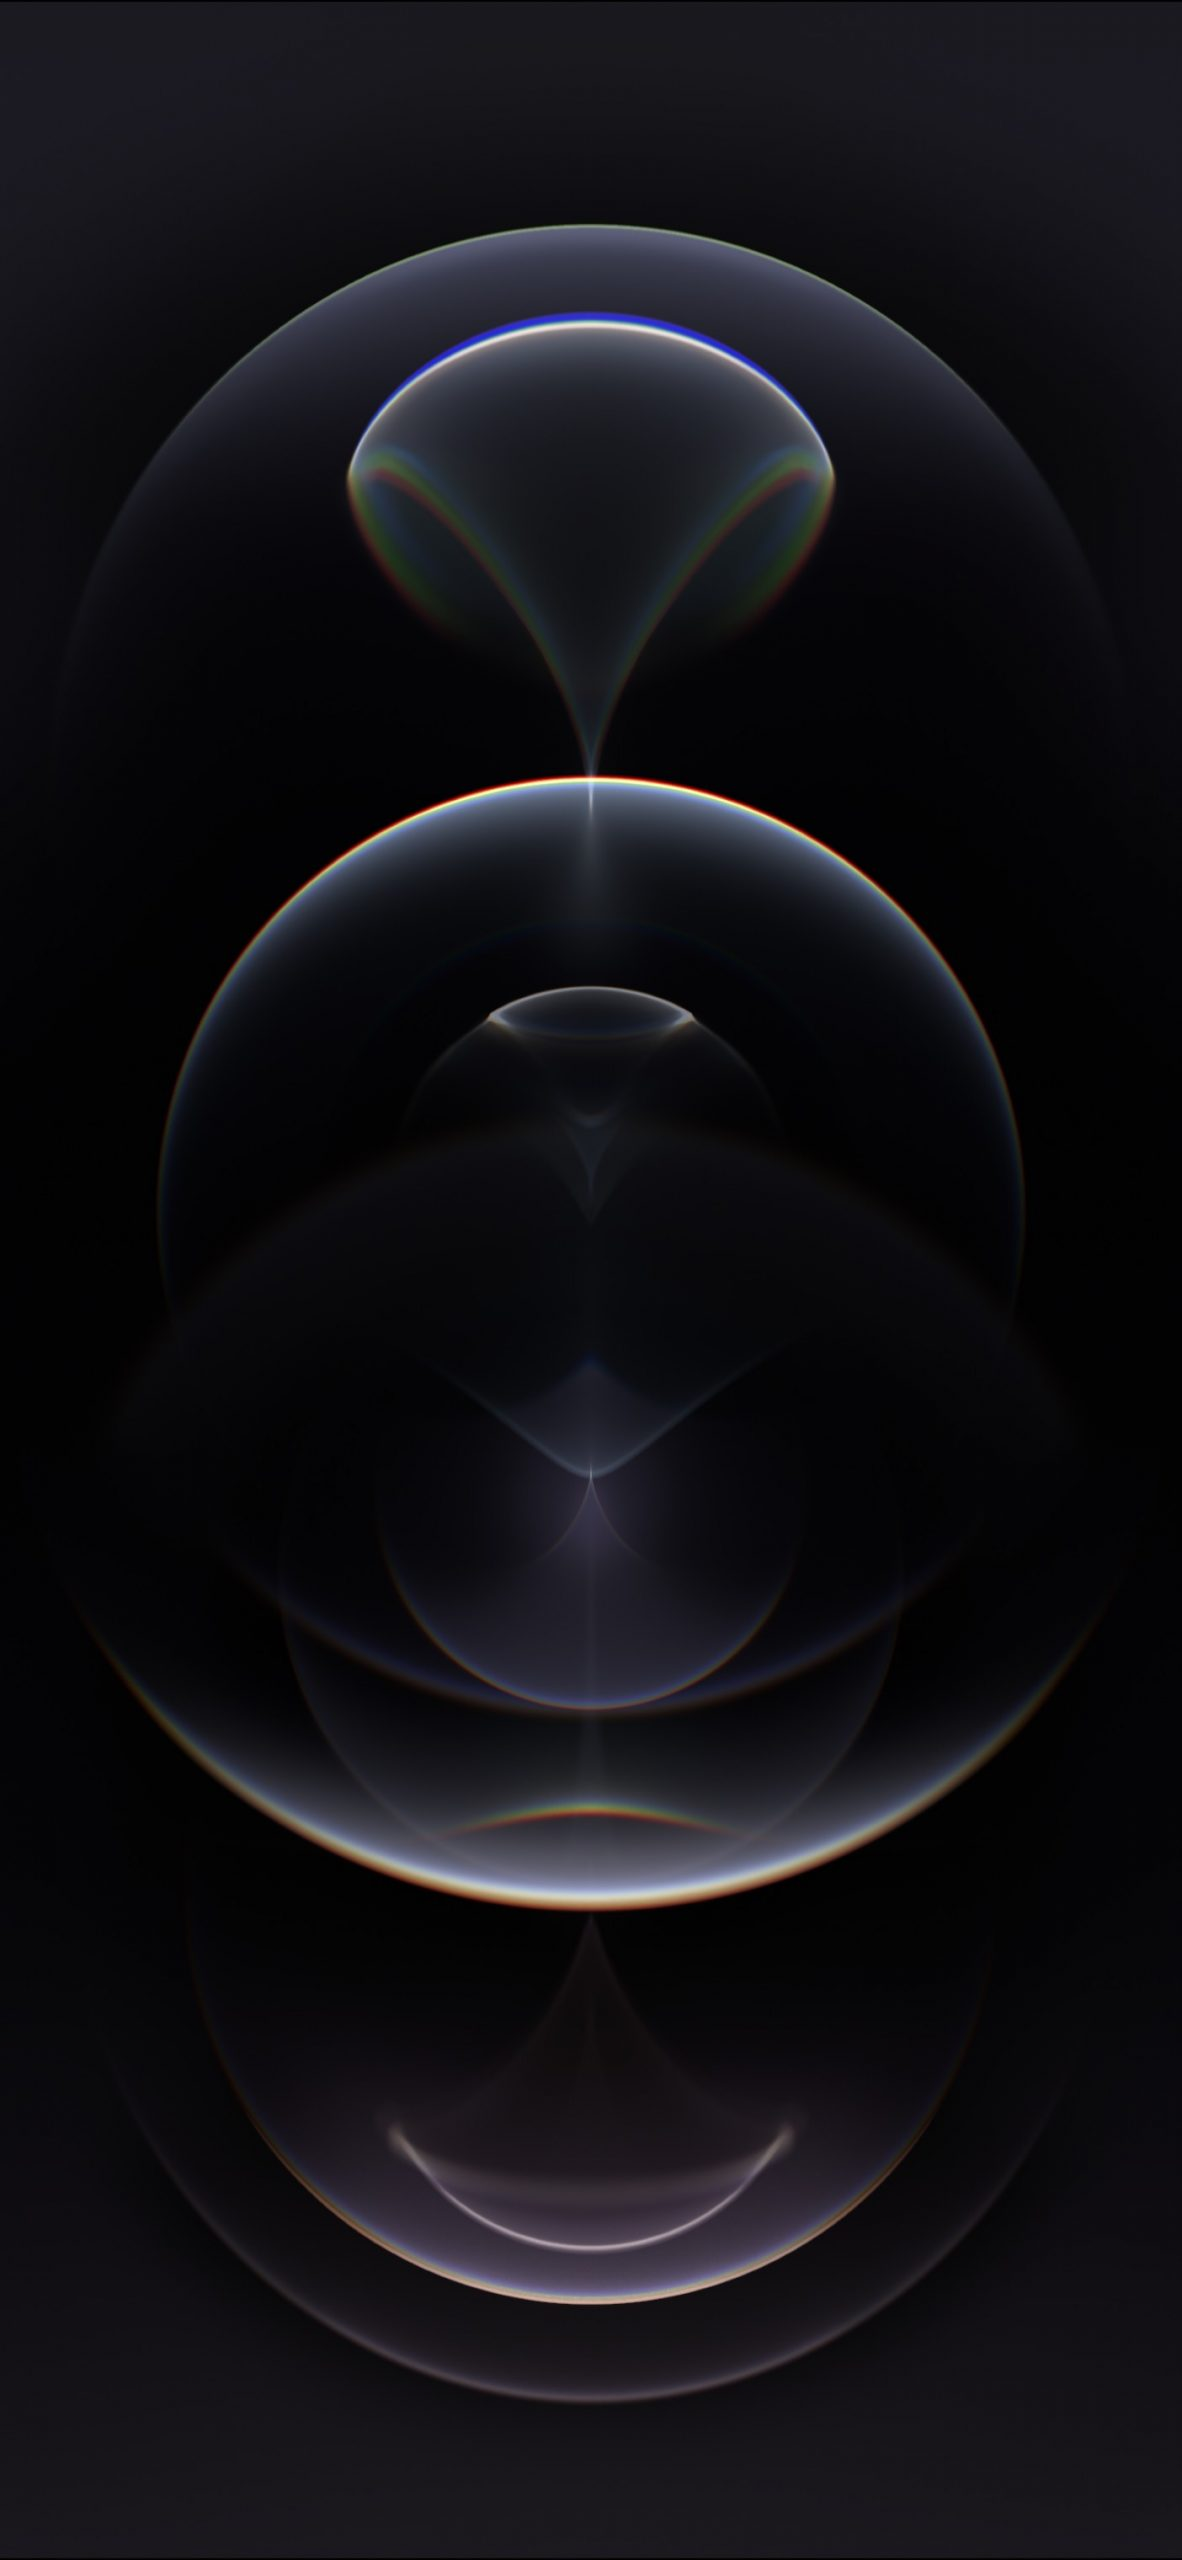 apple iphone 12 pro wallpapers 7 scaled